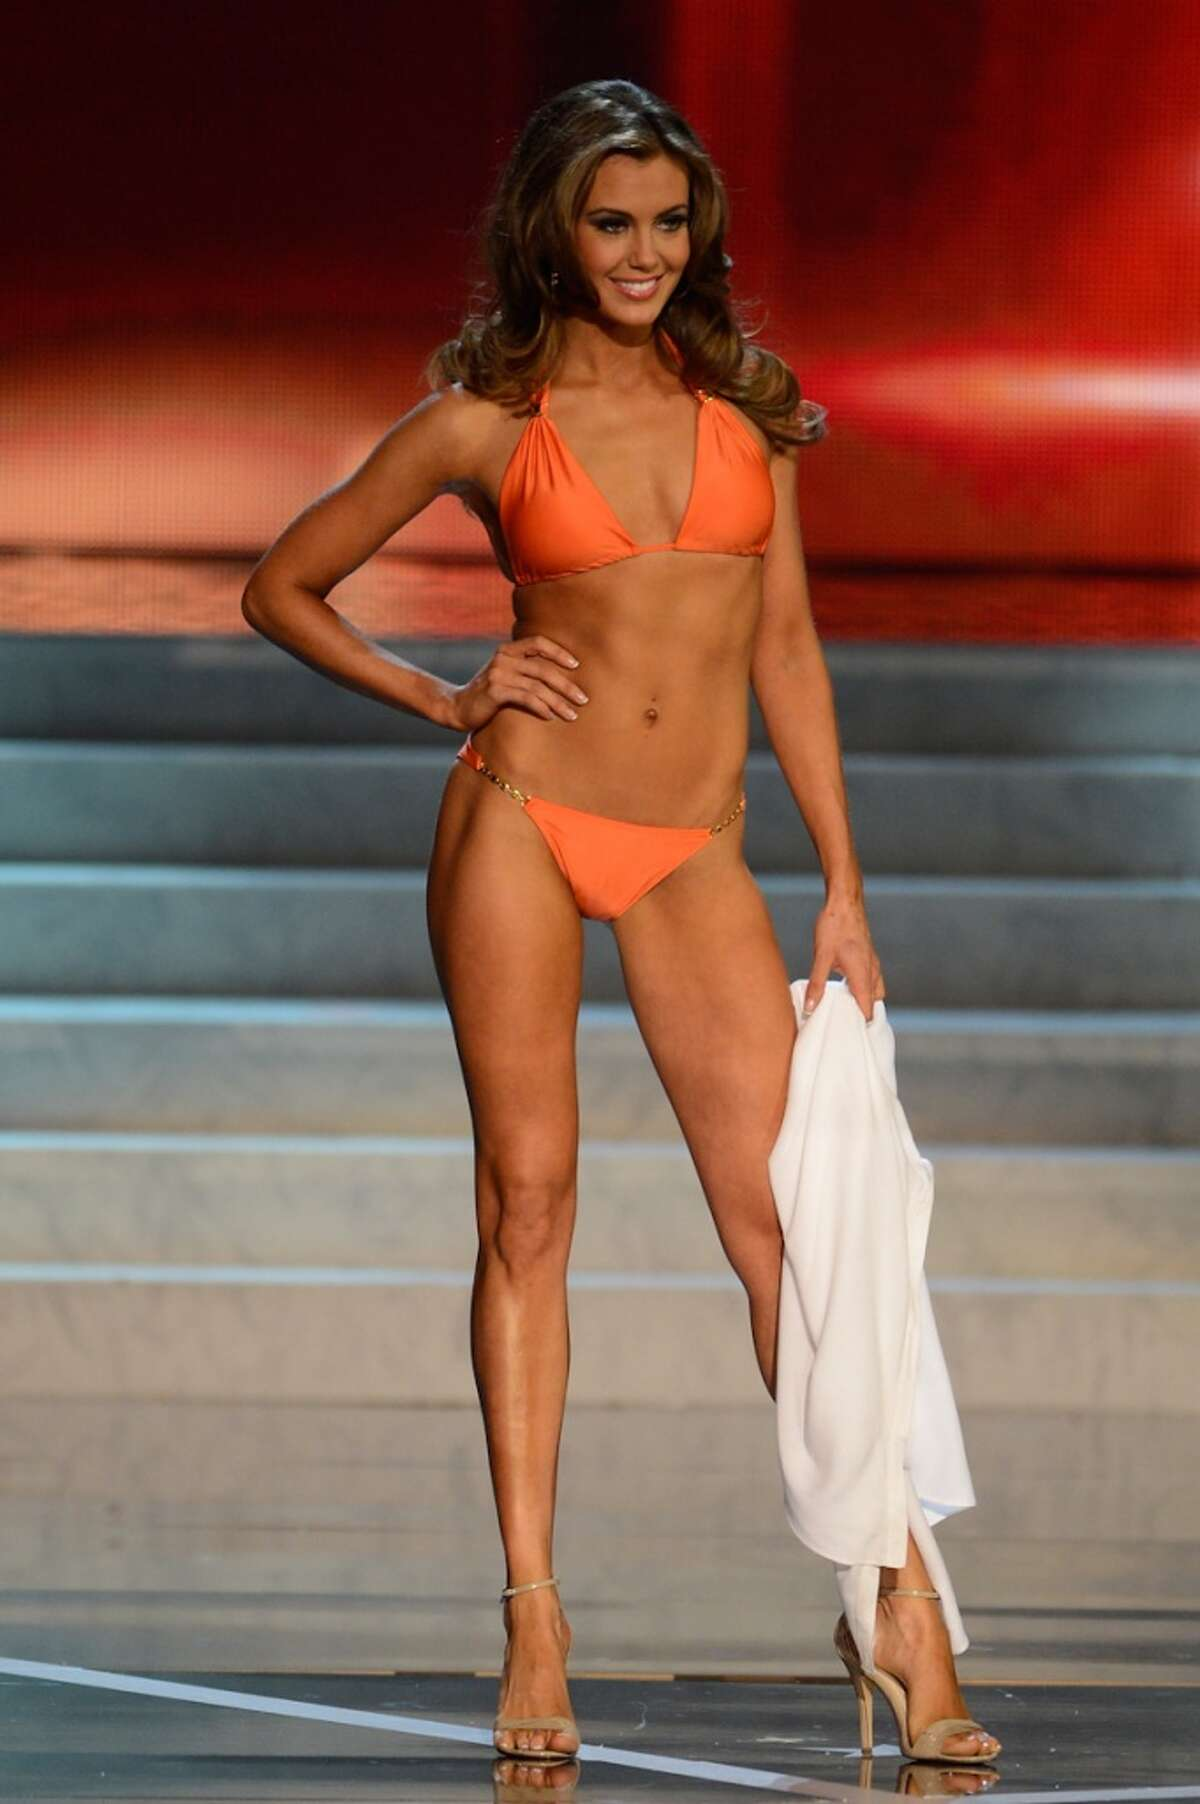 Miss Connecticut Erin Brady walks the runway during the swimsuit competition of the Miss USA 2013 pageant, Sunday, June 16, 2013, in Las Vegas.